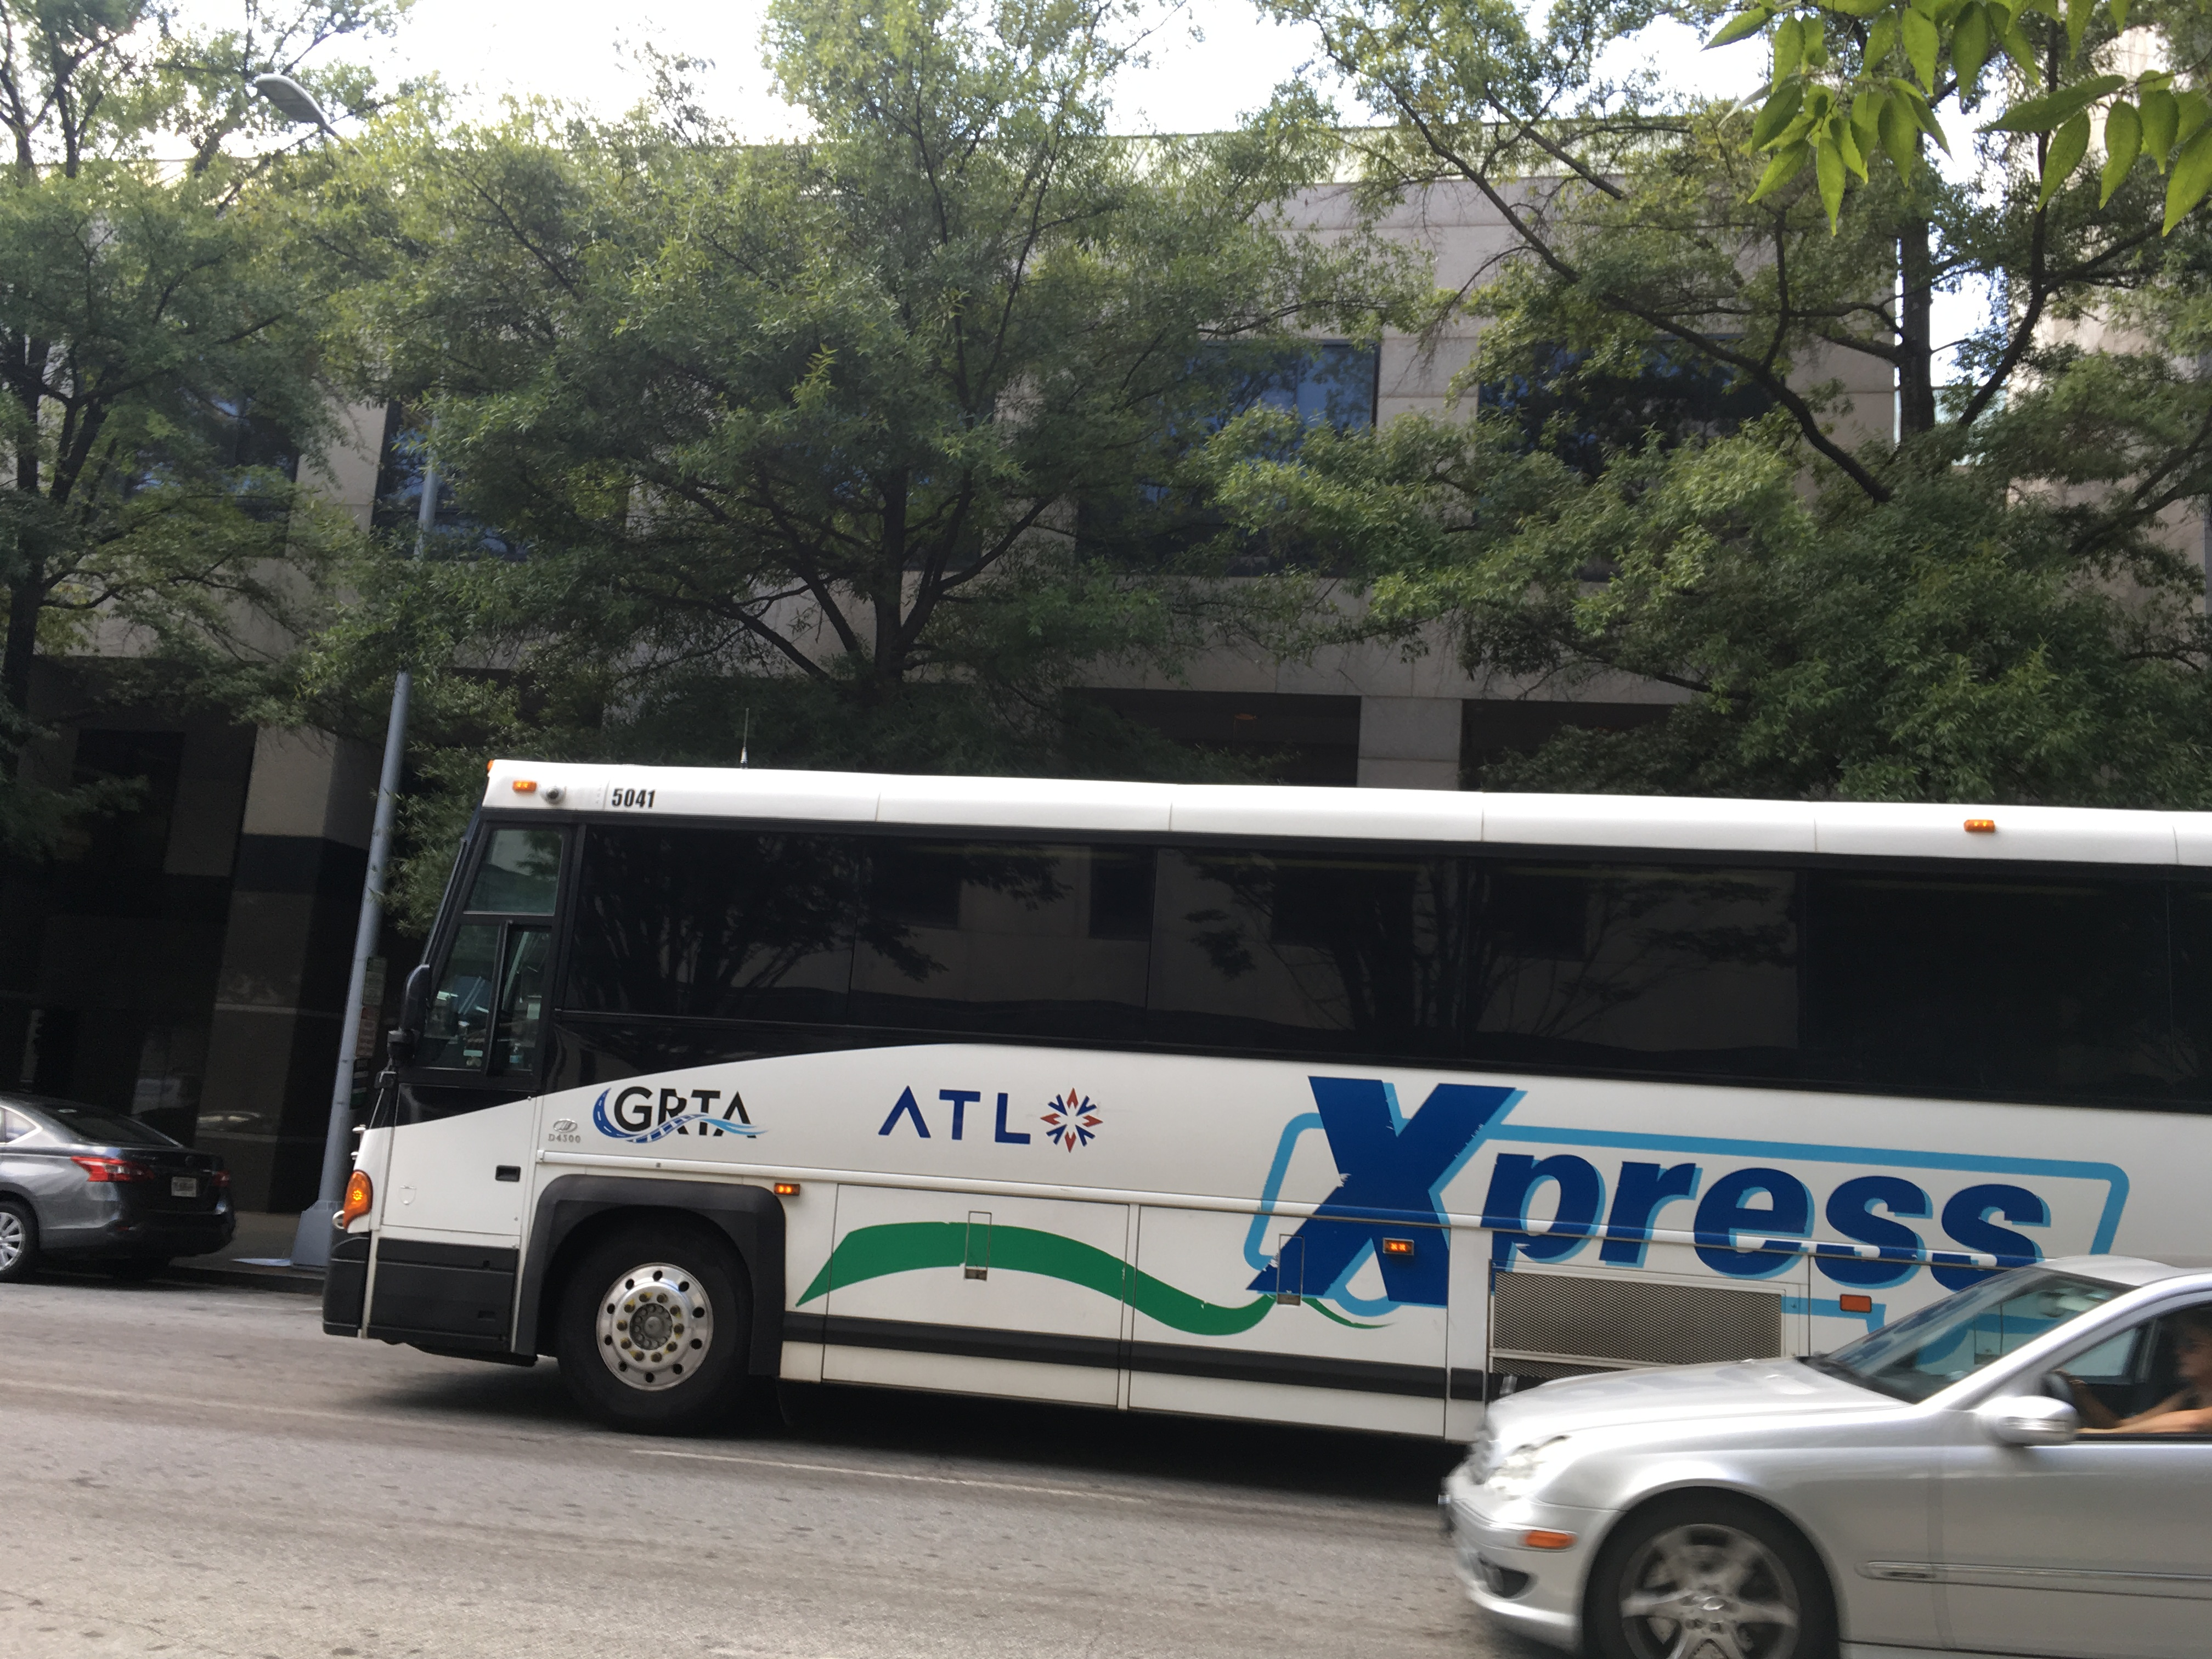 Xpress bus with The ATL logo (FIle/credit: Maggie Lee)